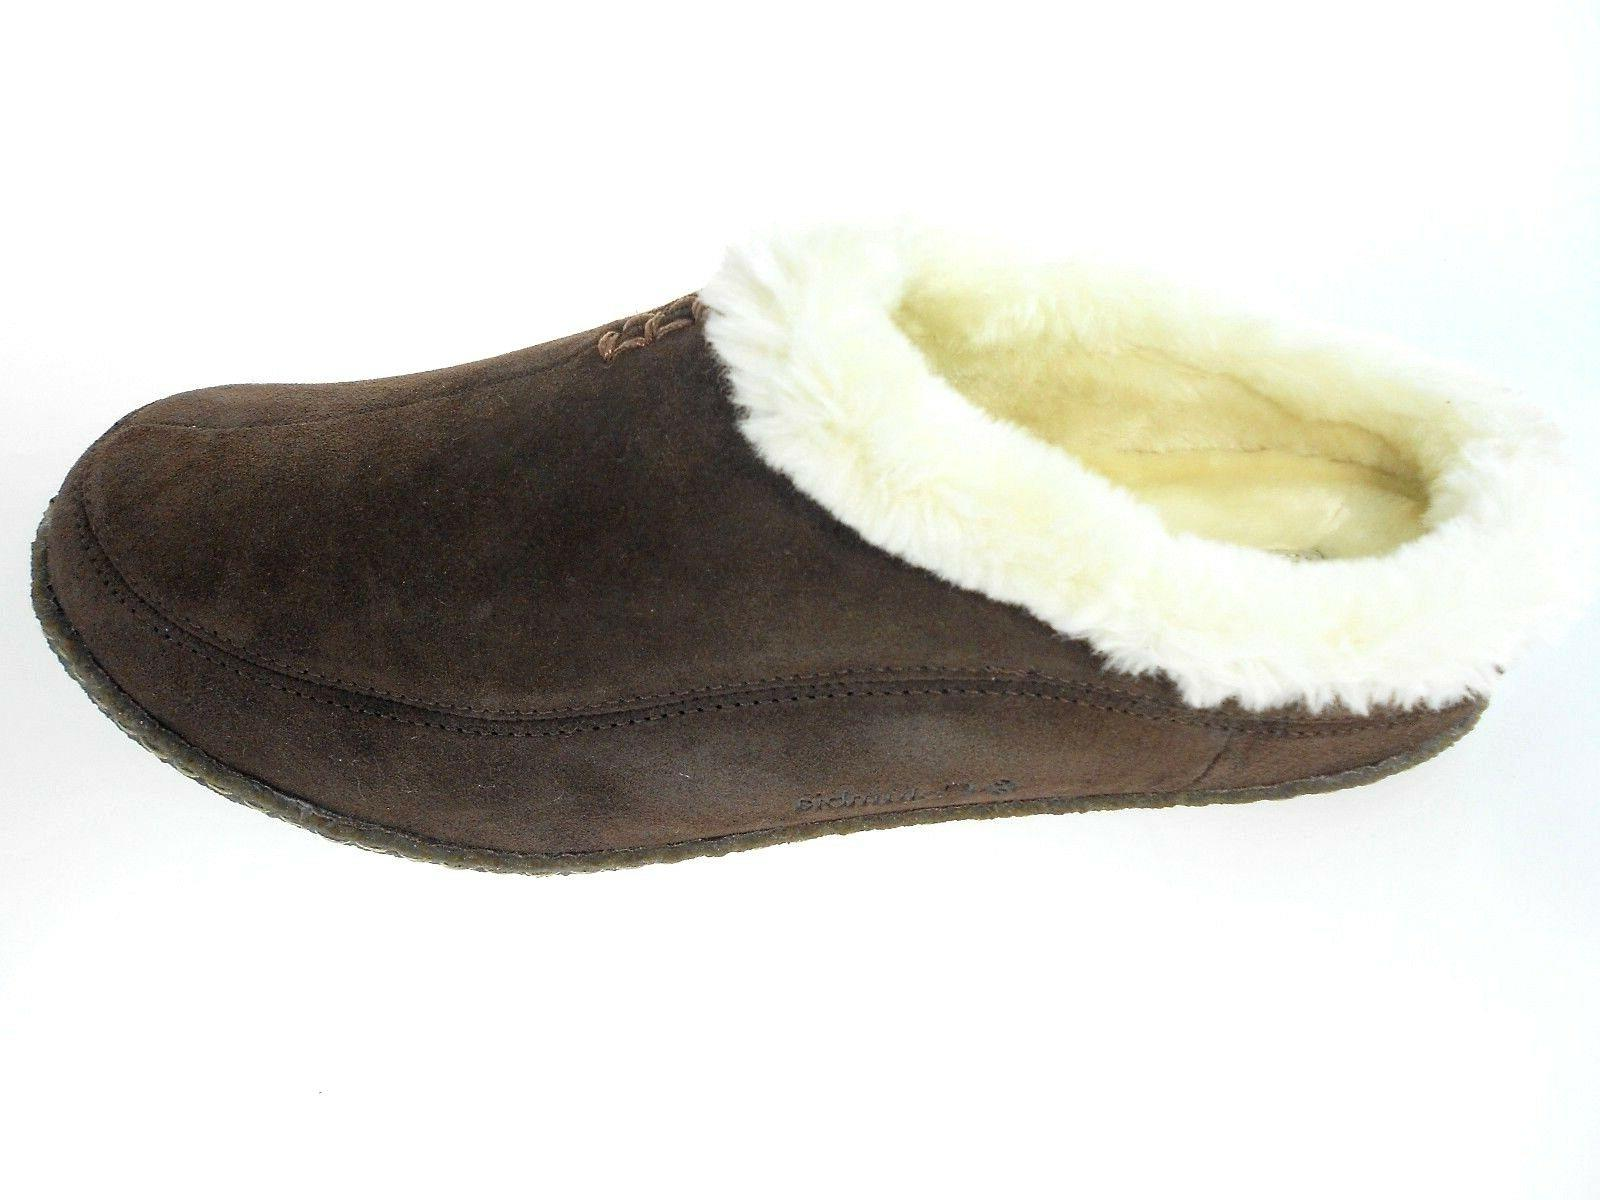 COLUMBIA DUNMORE HILL BROWN FAUX FUR SLIPPERS, #YM1405-248